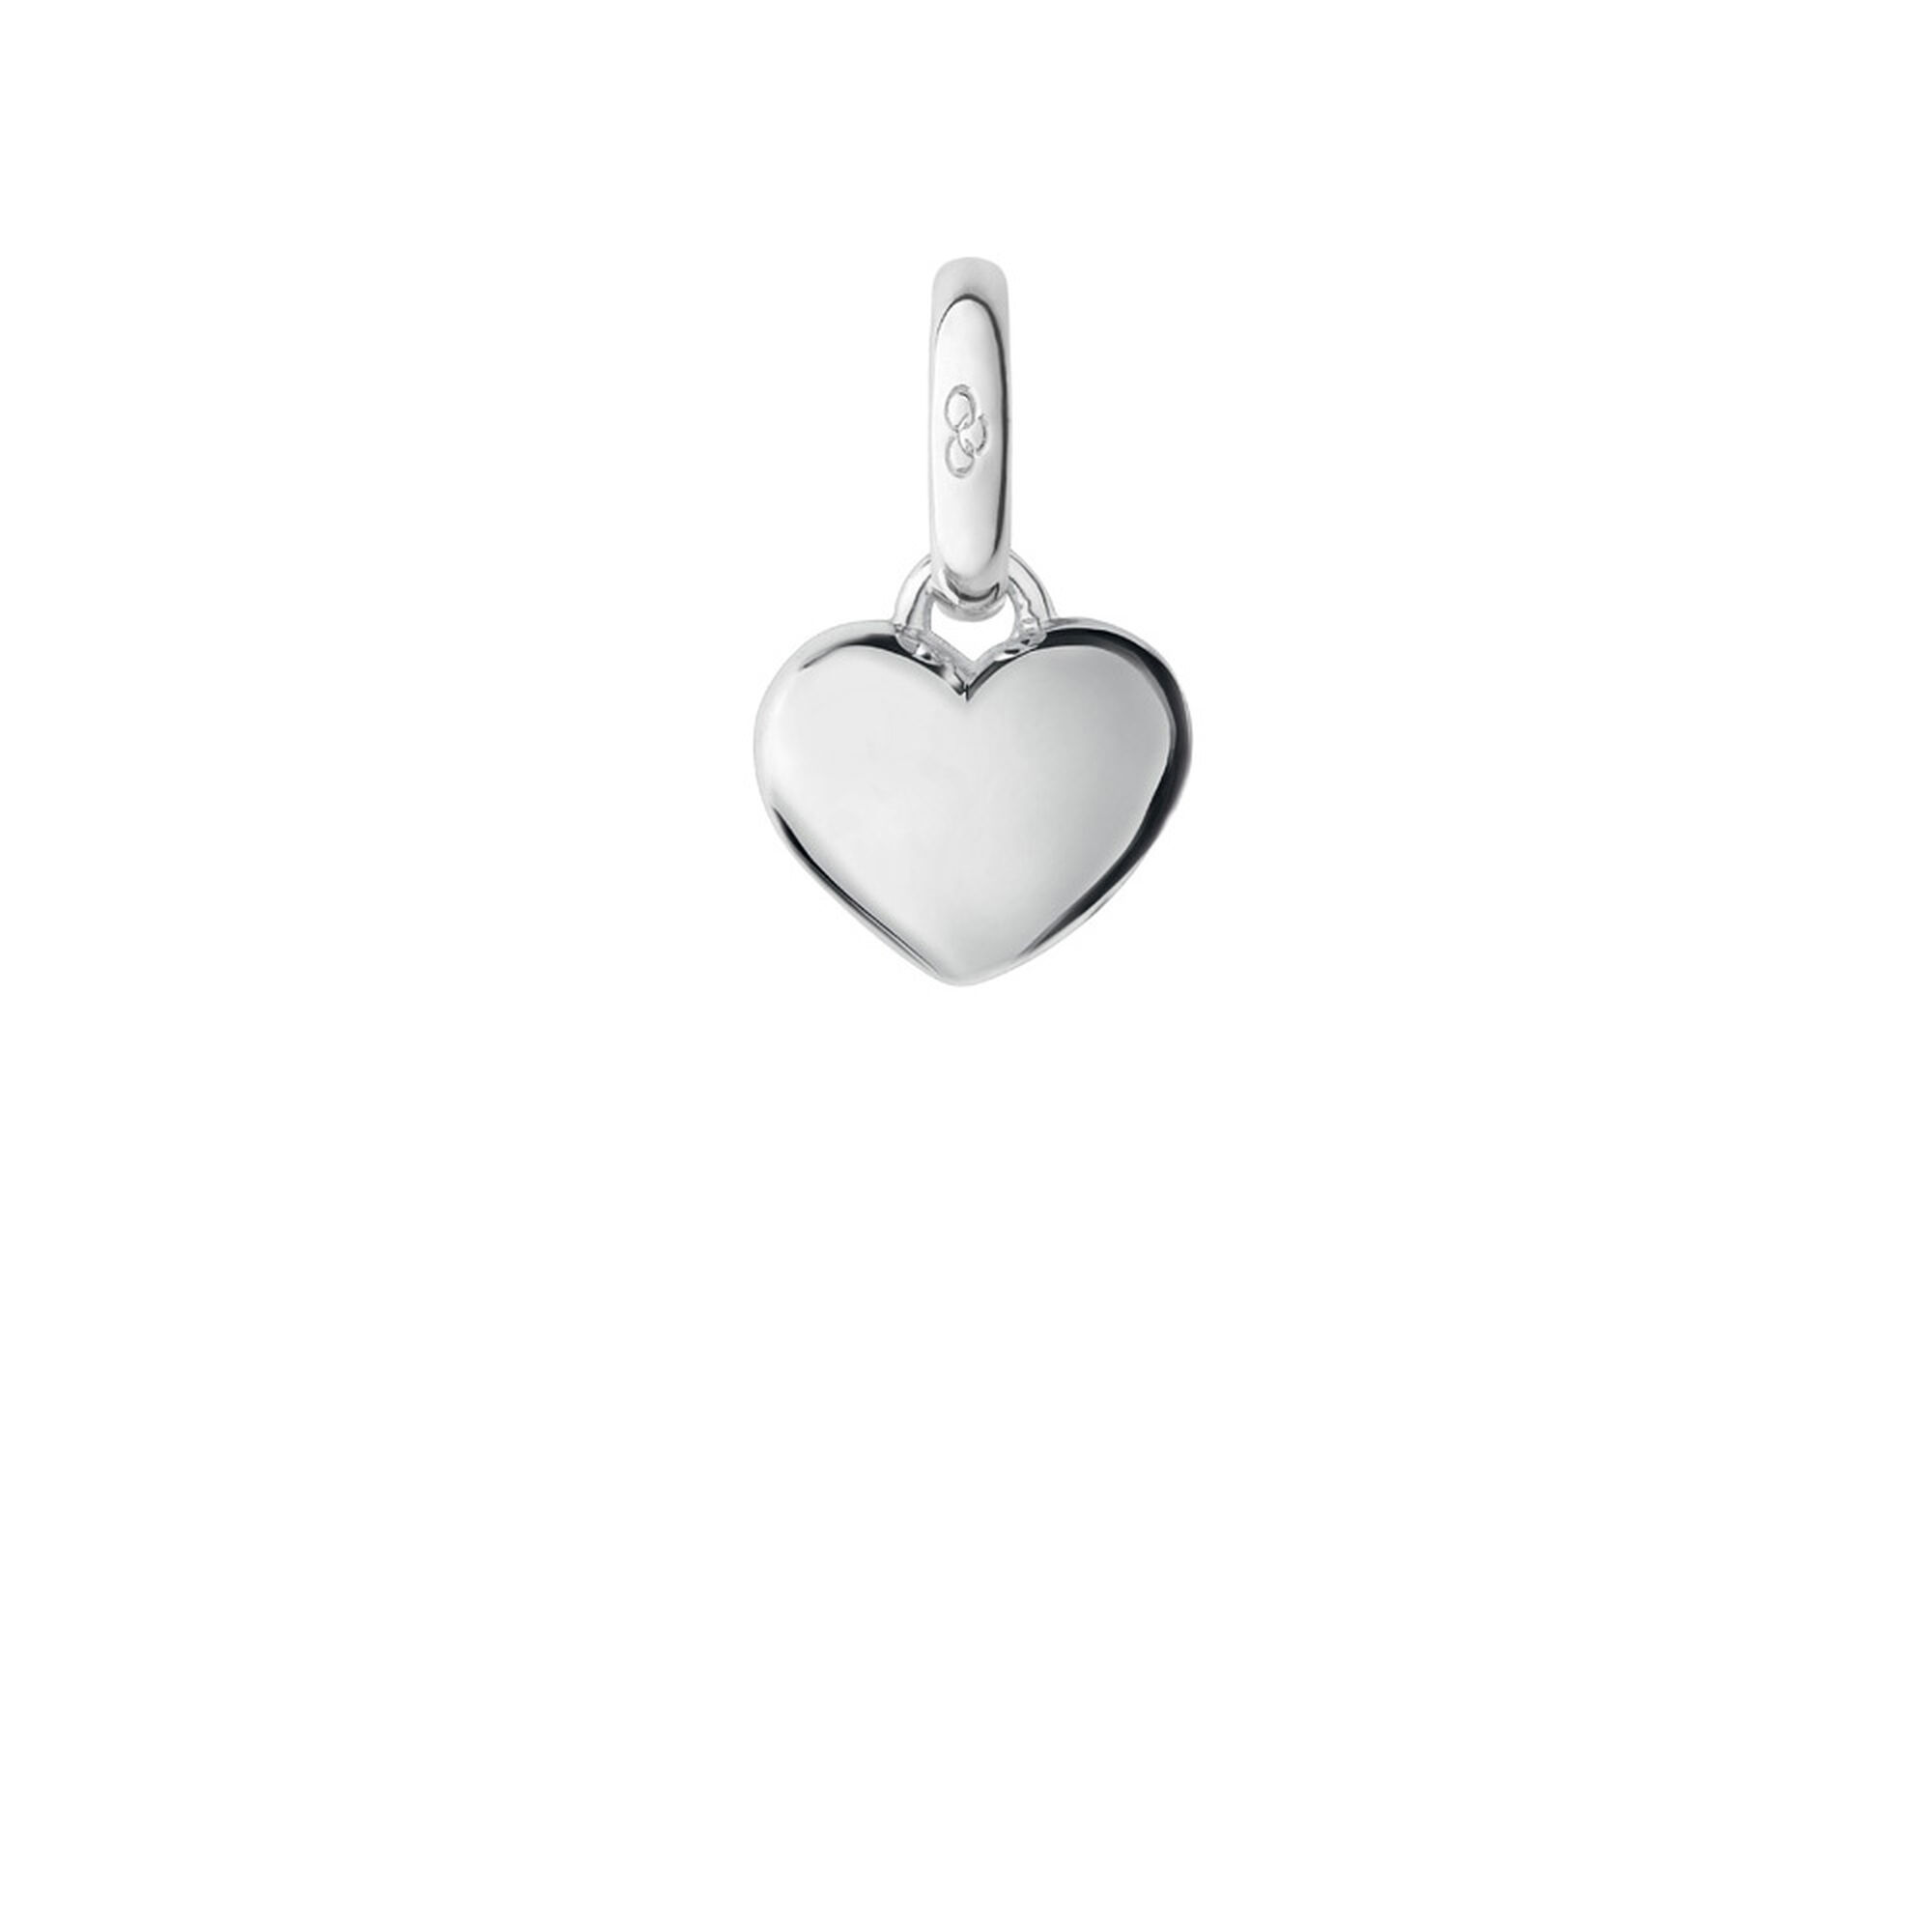 heart authentic pendant co img double elsa peretti nov open tag tiffany mini necklace products